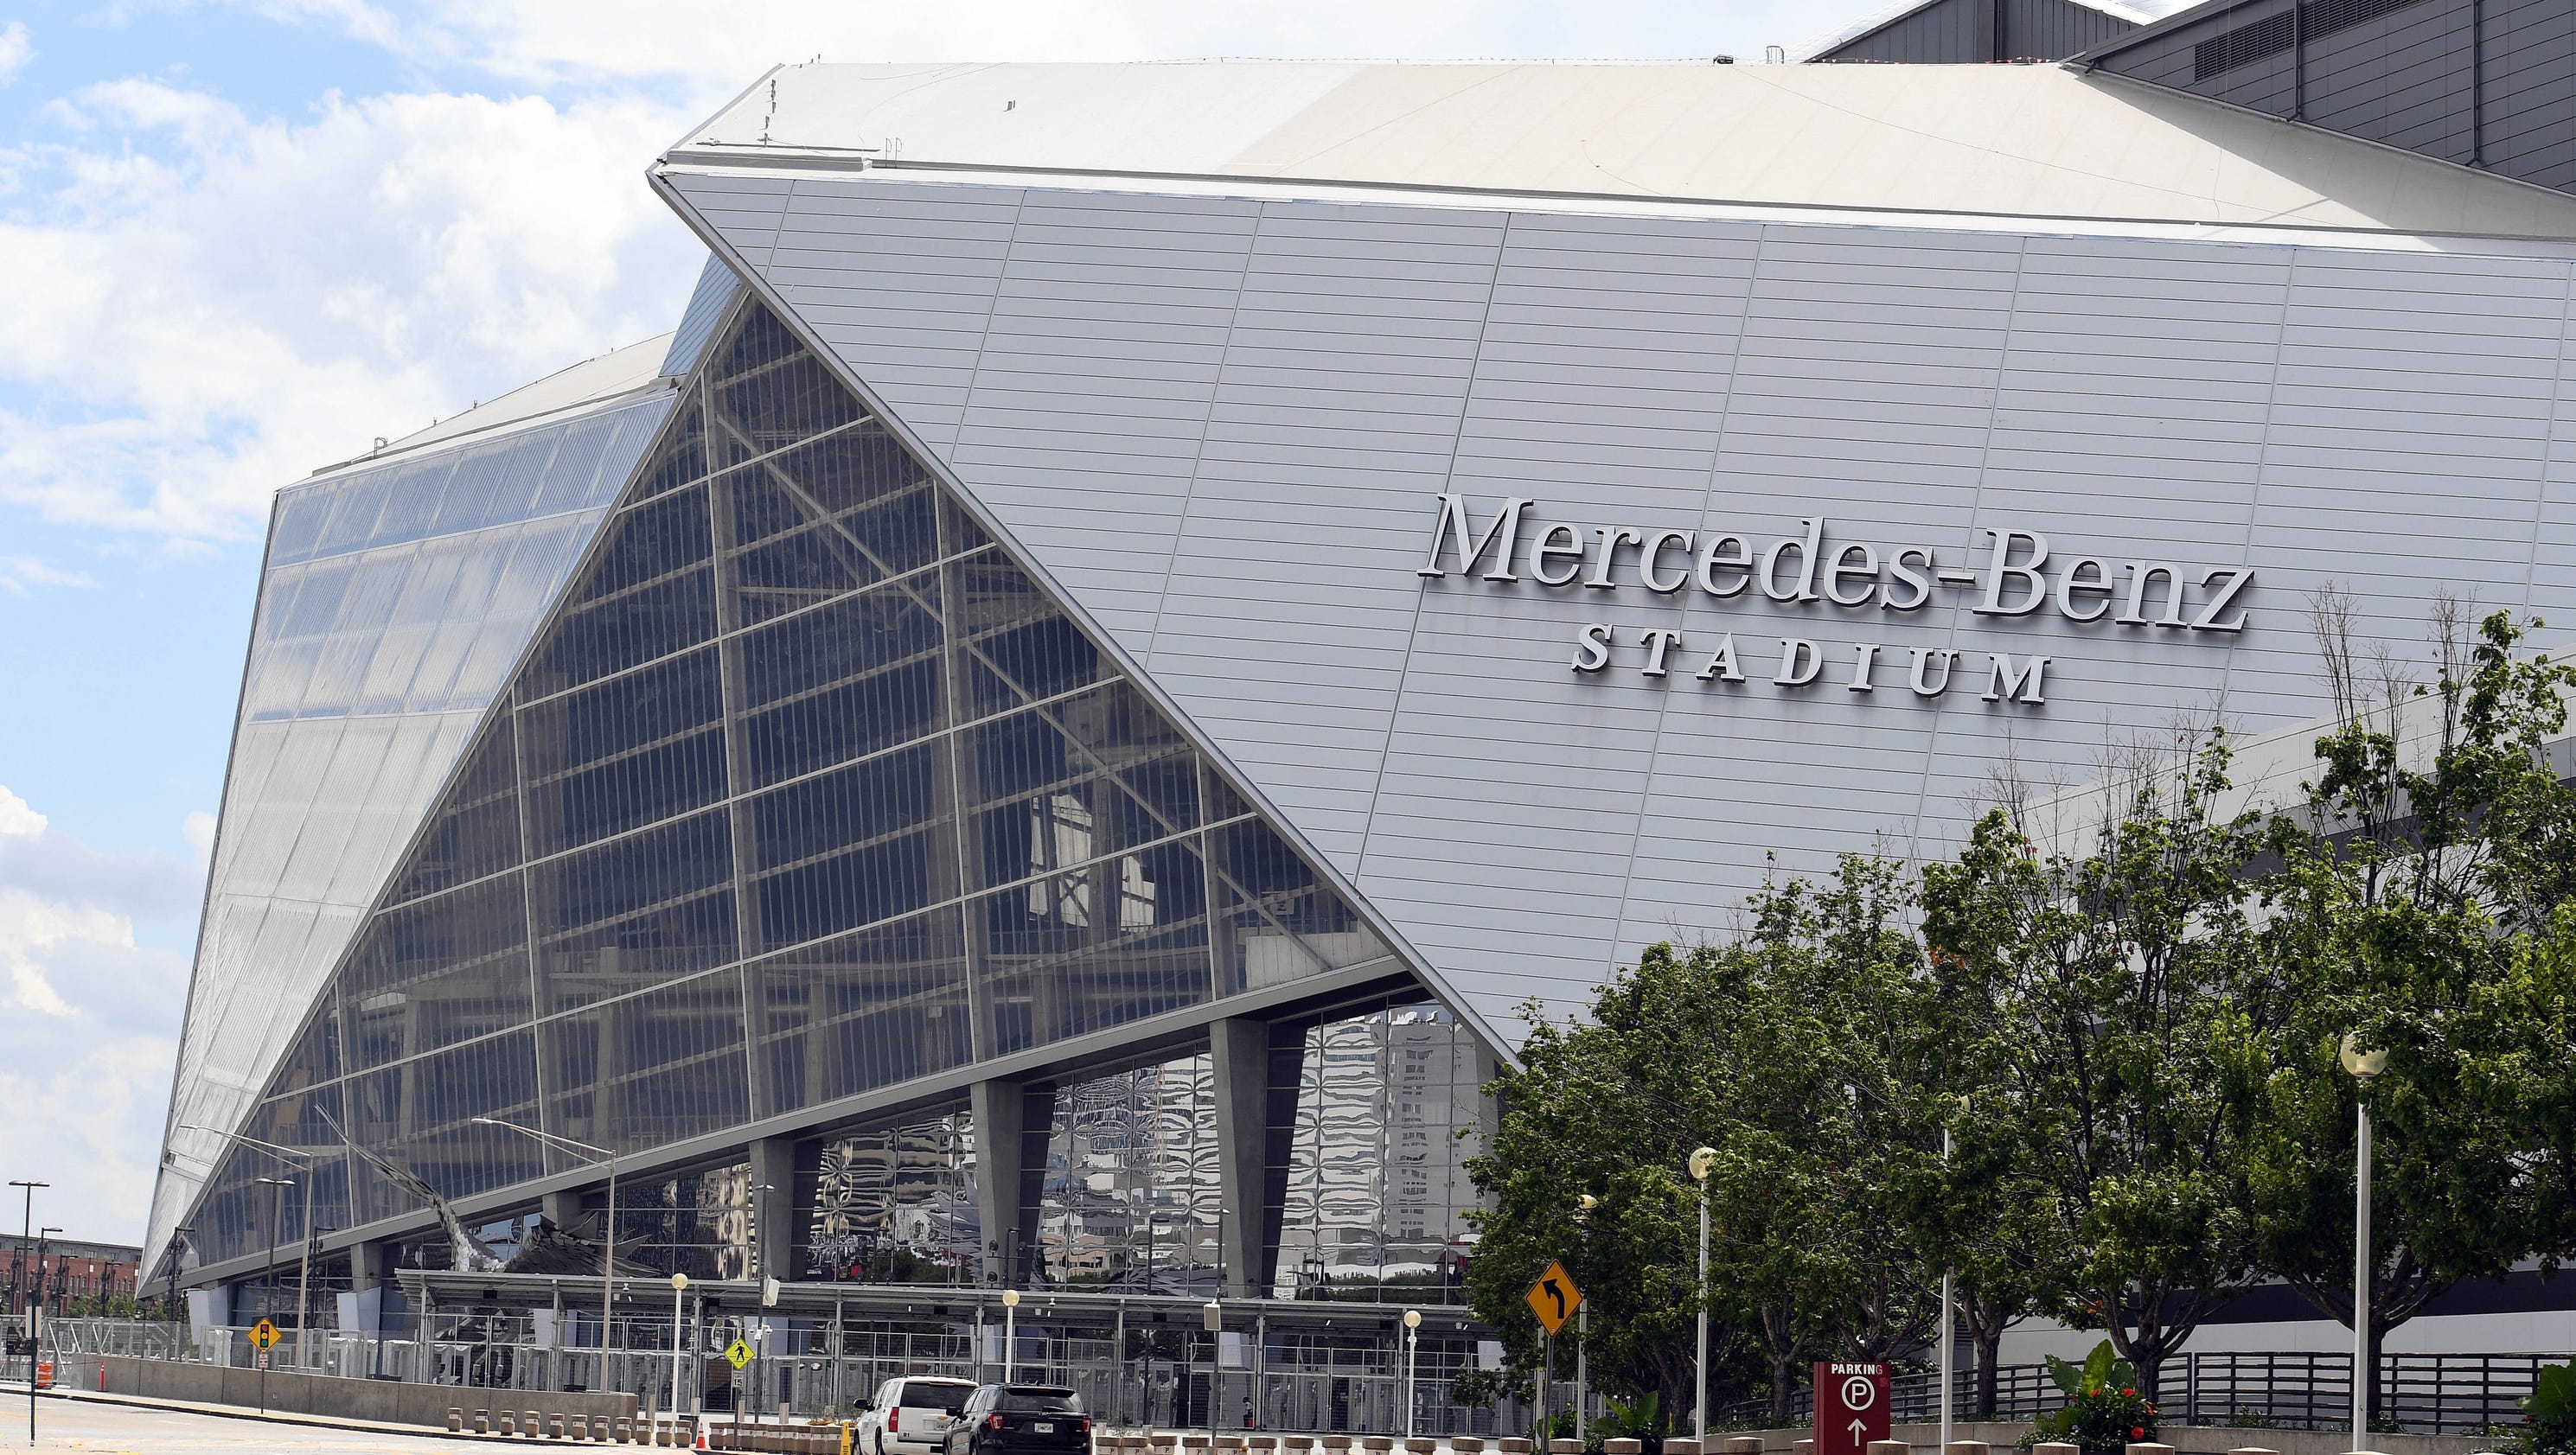 Check out atlanta 39 s new mercedes benz stadium for Mercedes benz stadium opening